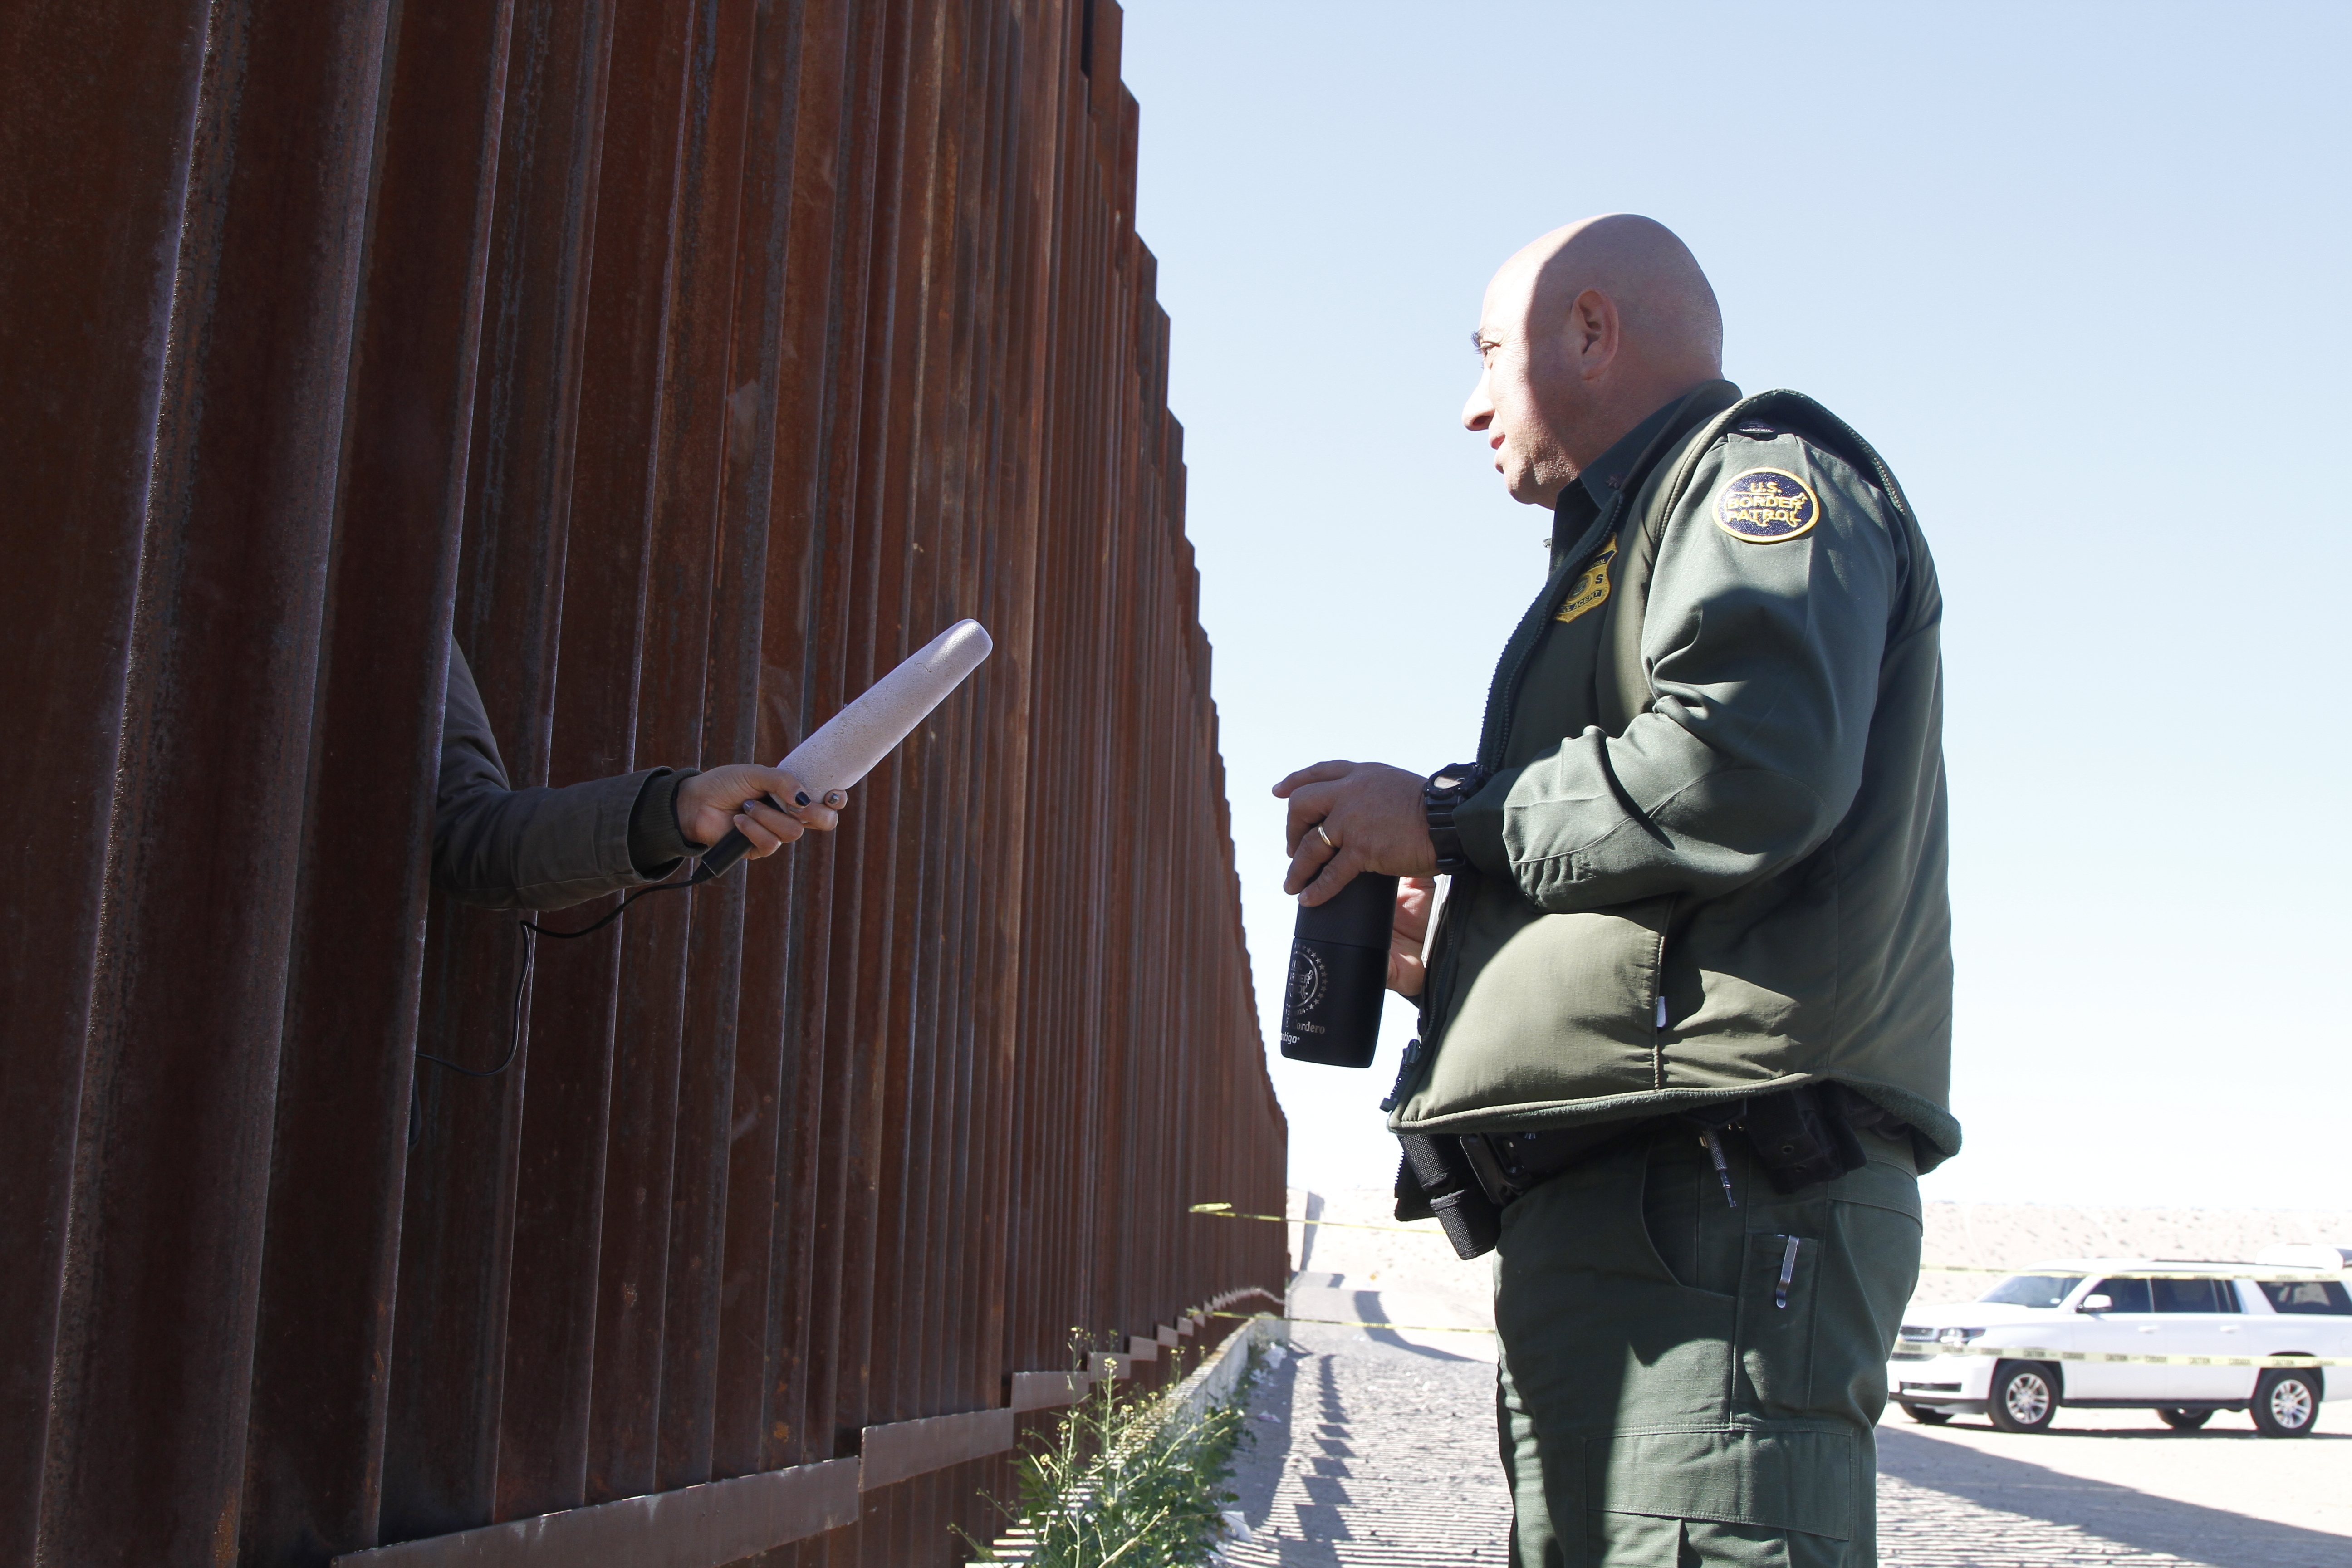 A journalist in Anapara, Mexico, sticks her microphone through a through a border fence to interview a Border Patrol agent following a training exercise on Friday, Jan. 31, 2020, in Sunland Park, New Mexico. Journalists in Mexico filmed the use-of-force exercises through gaps in the bollard-style wall.